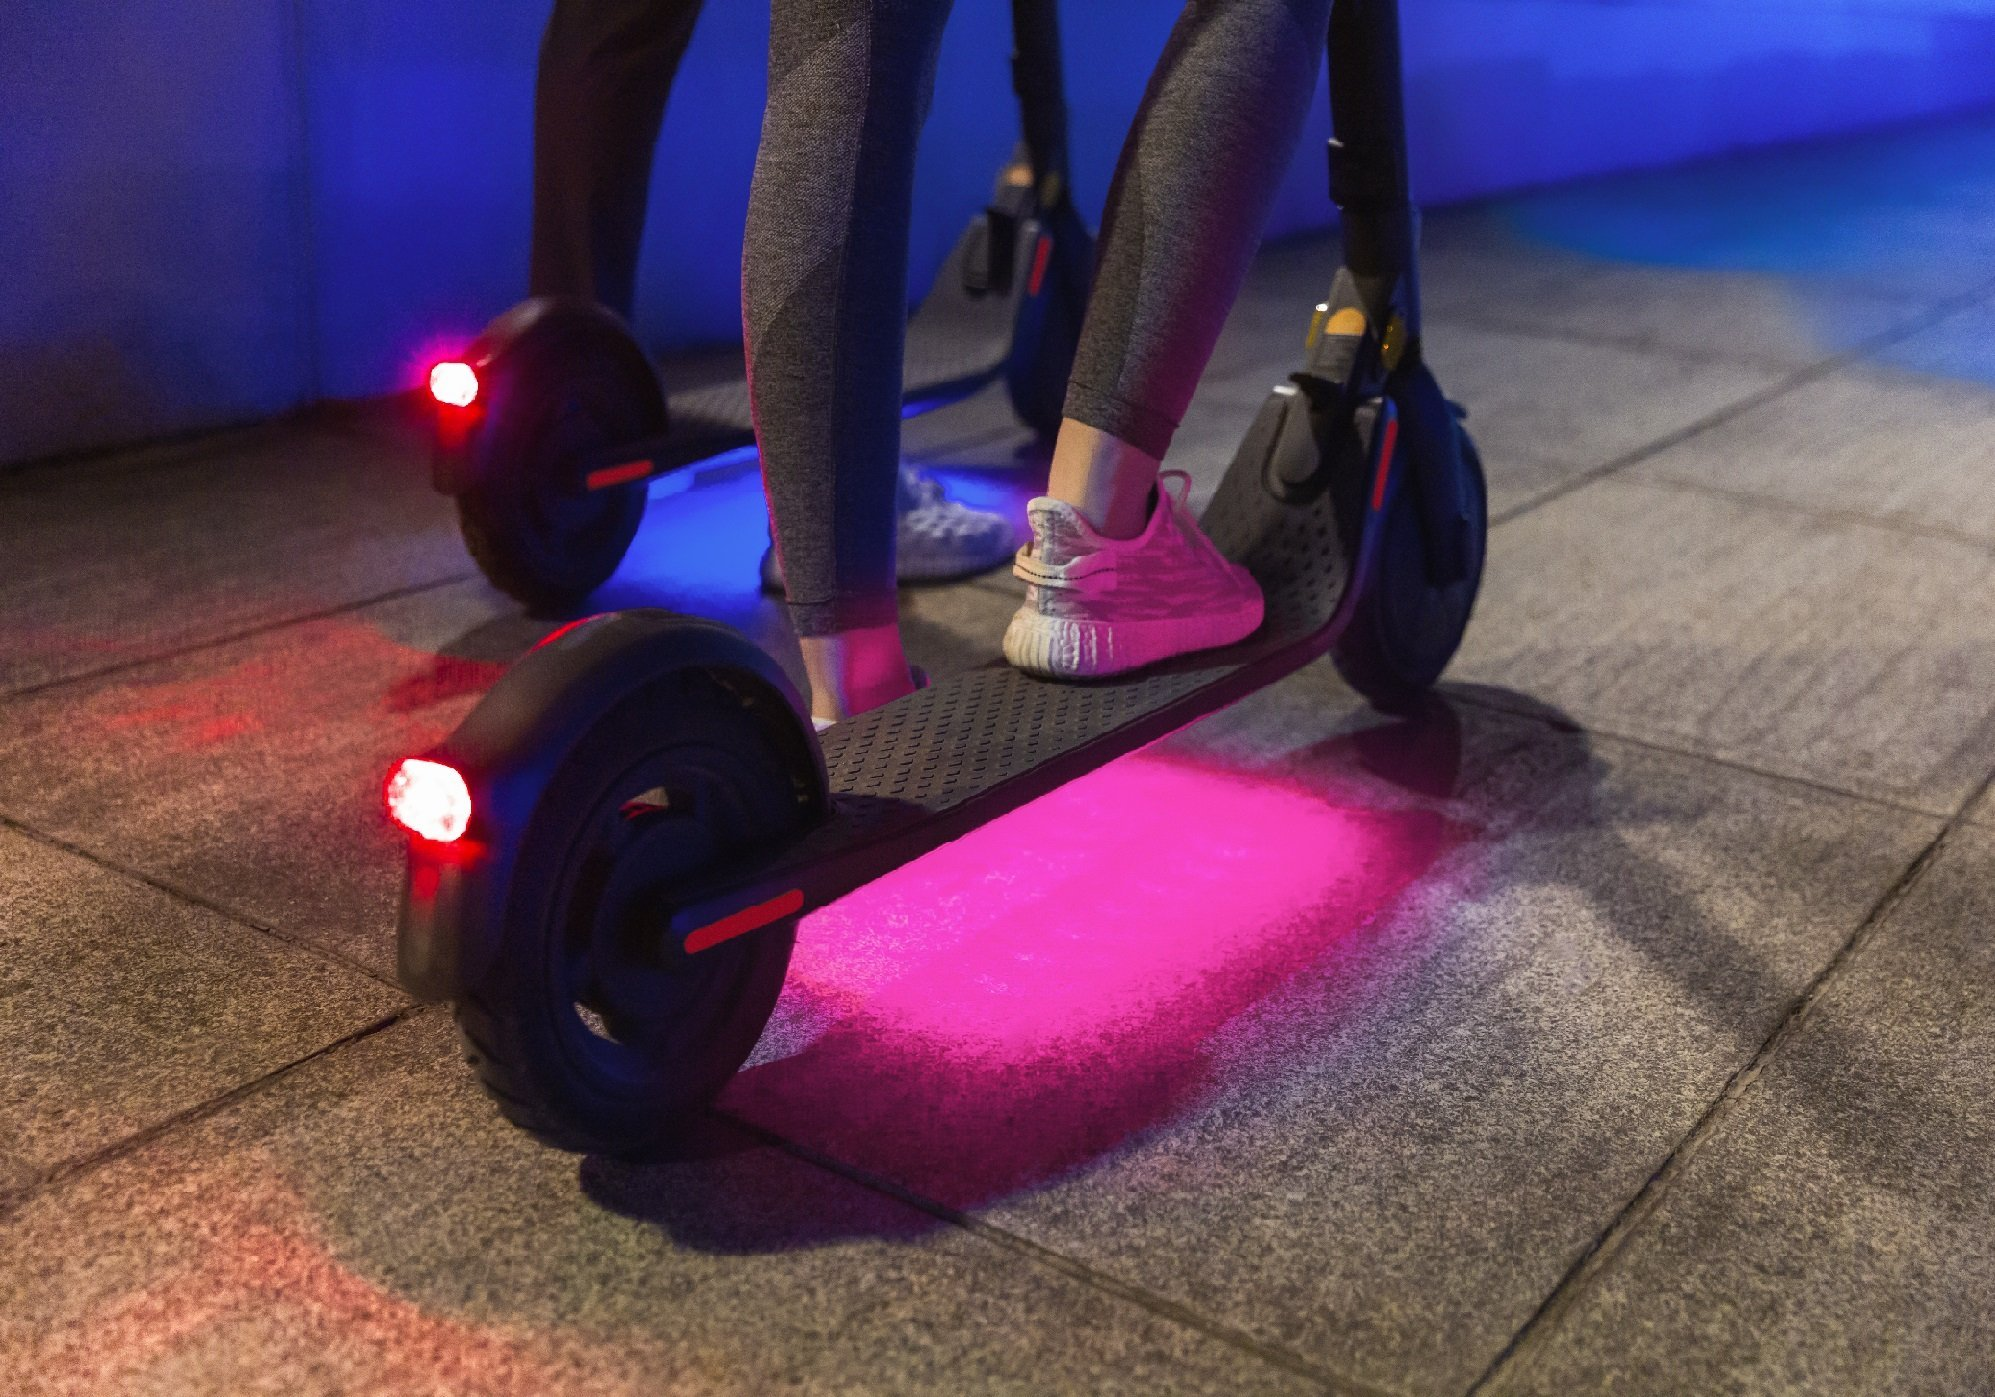 Segway Ninebot E25E Electric Scooter   Expert Opinion 1